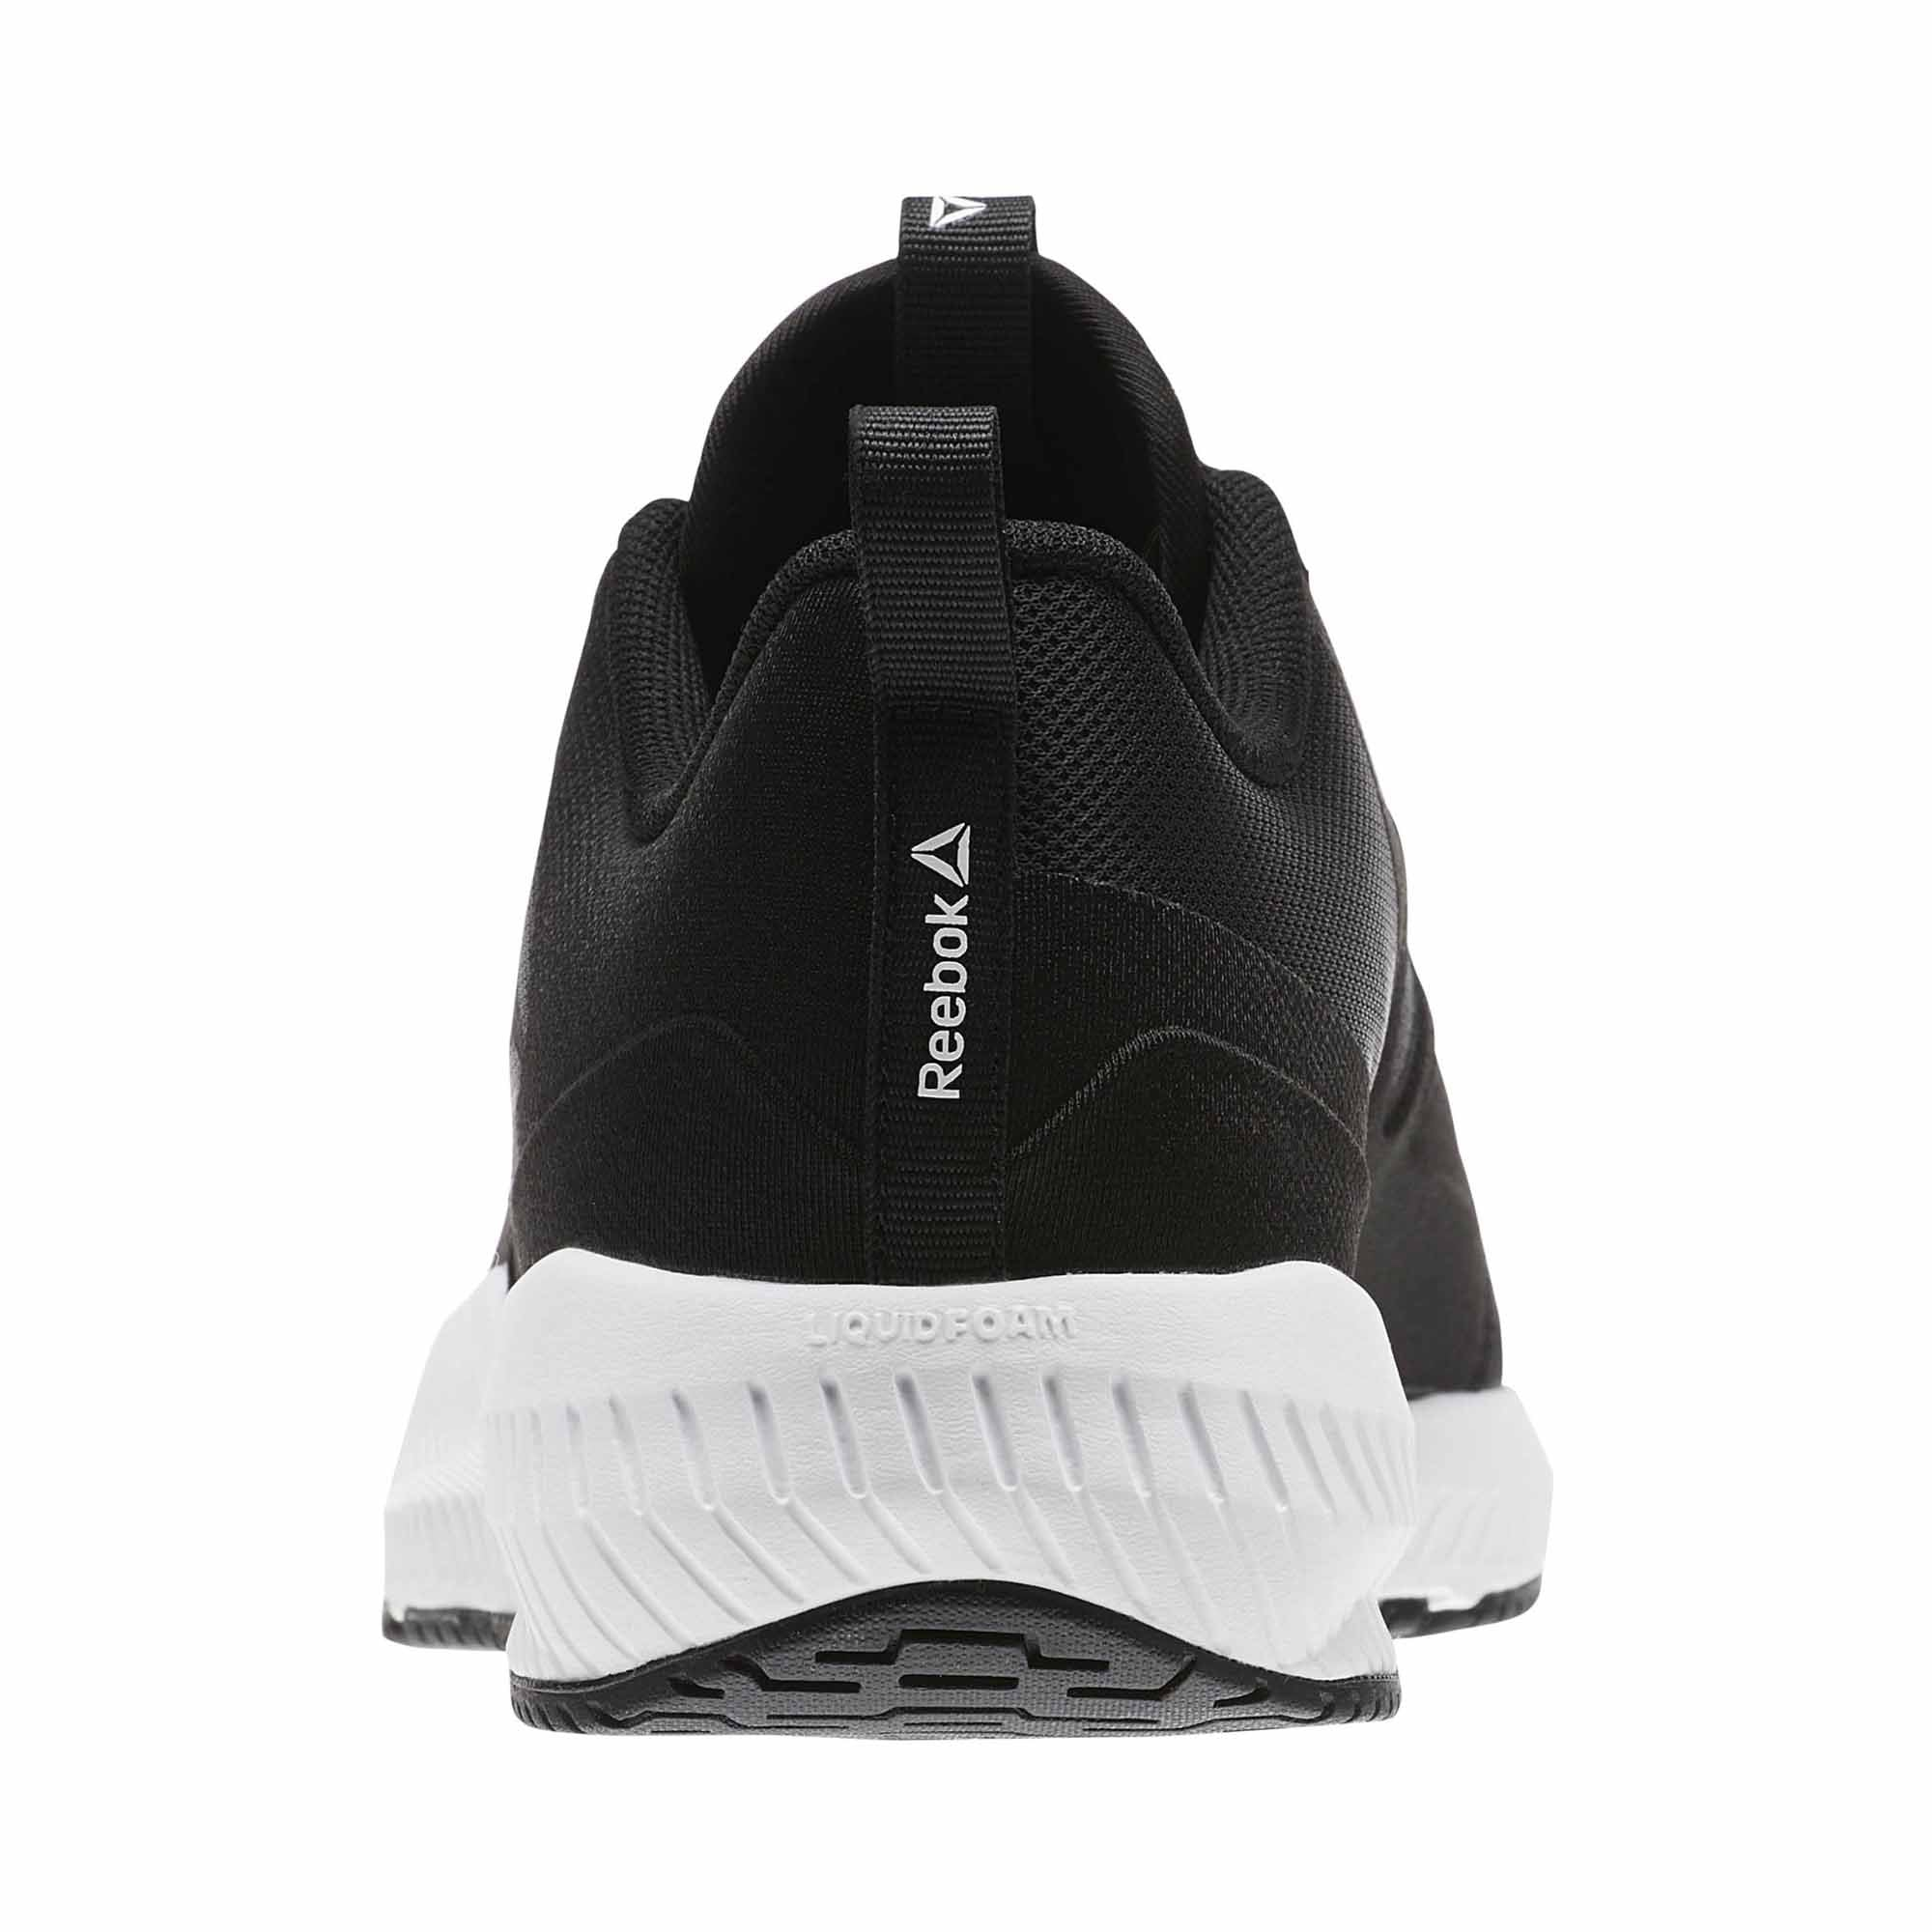 2f8b8a6f7a8 Buy Reebok Hydrorush Training Shoes